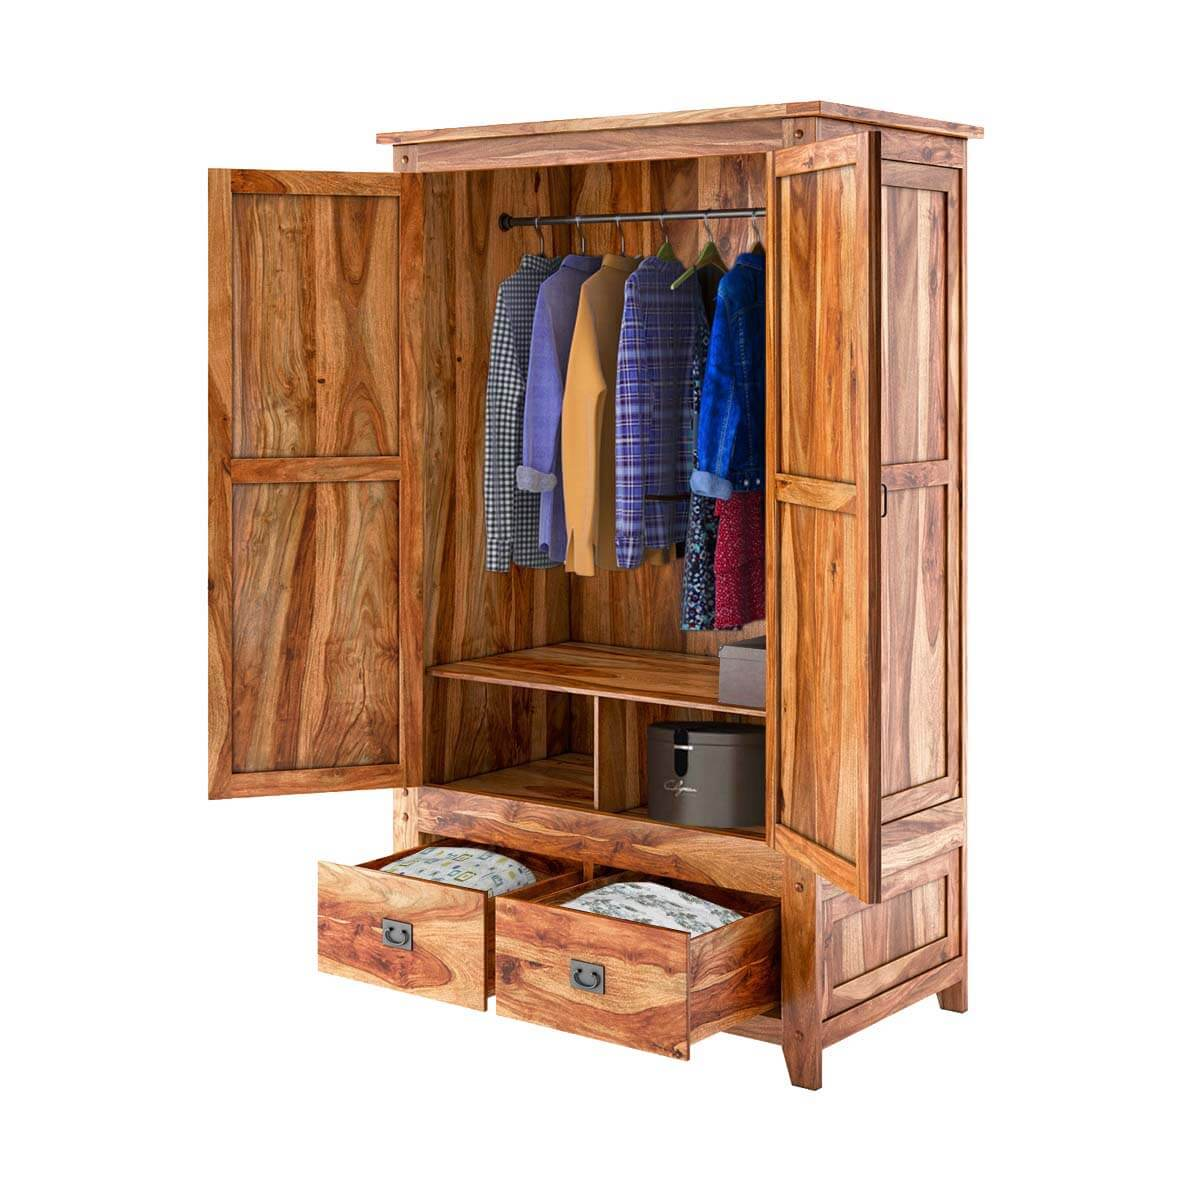 Delaware solid wood drawer rustic armoire closet